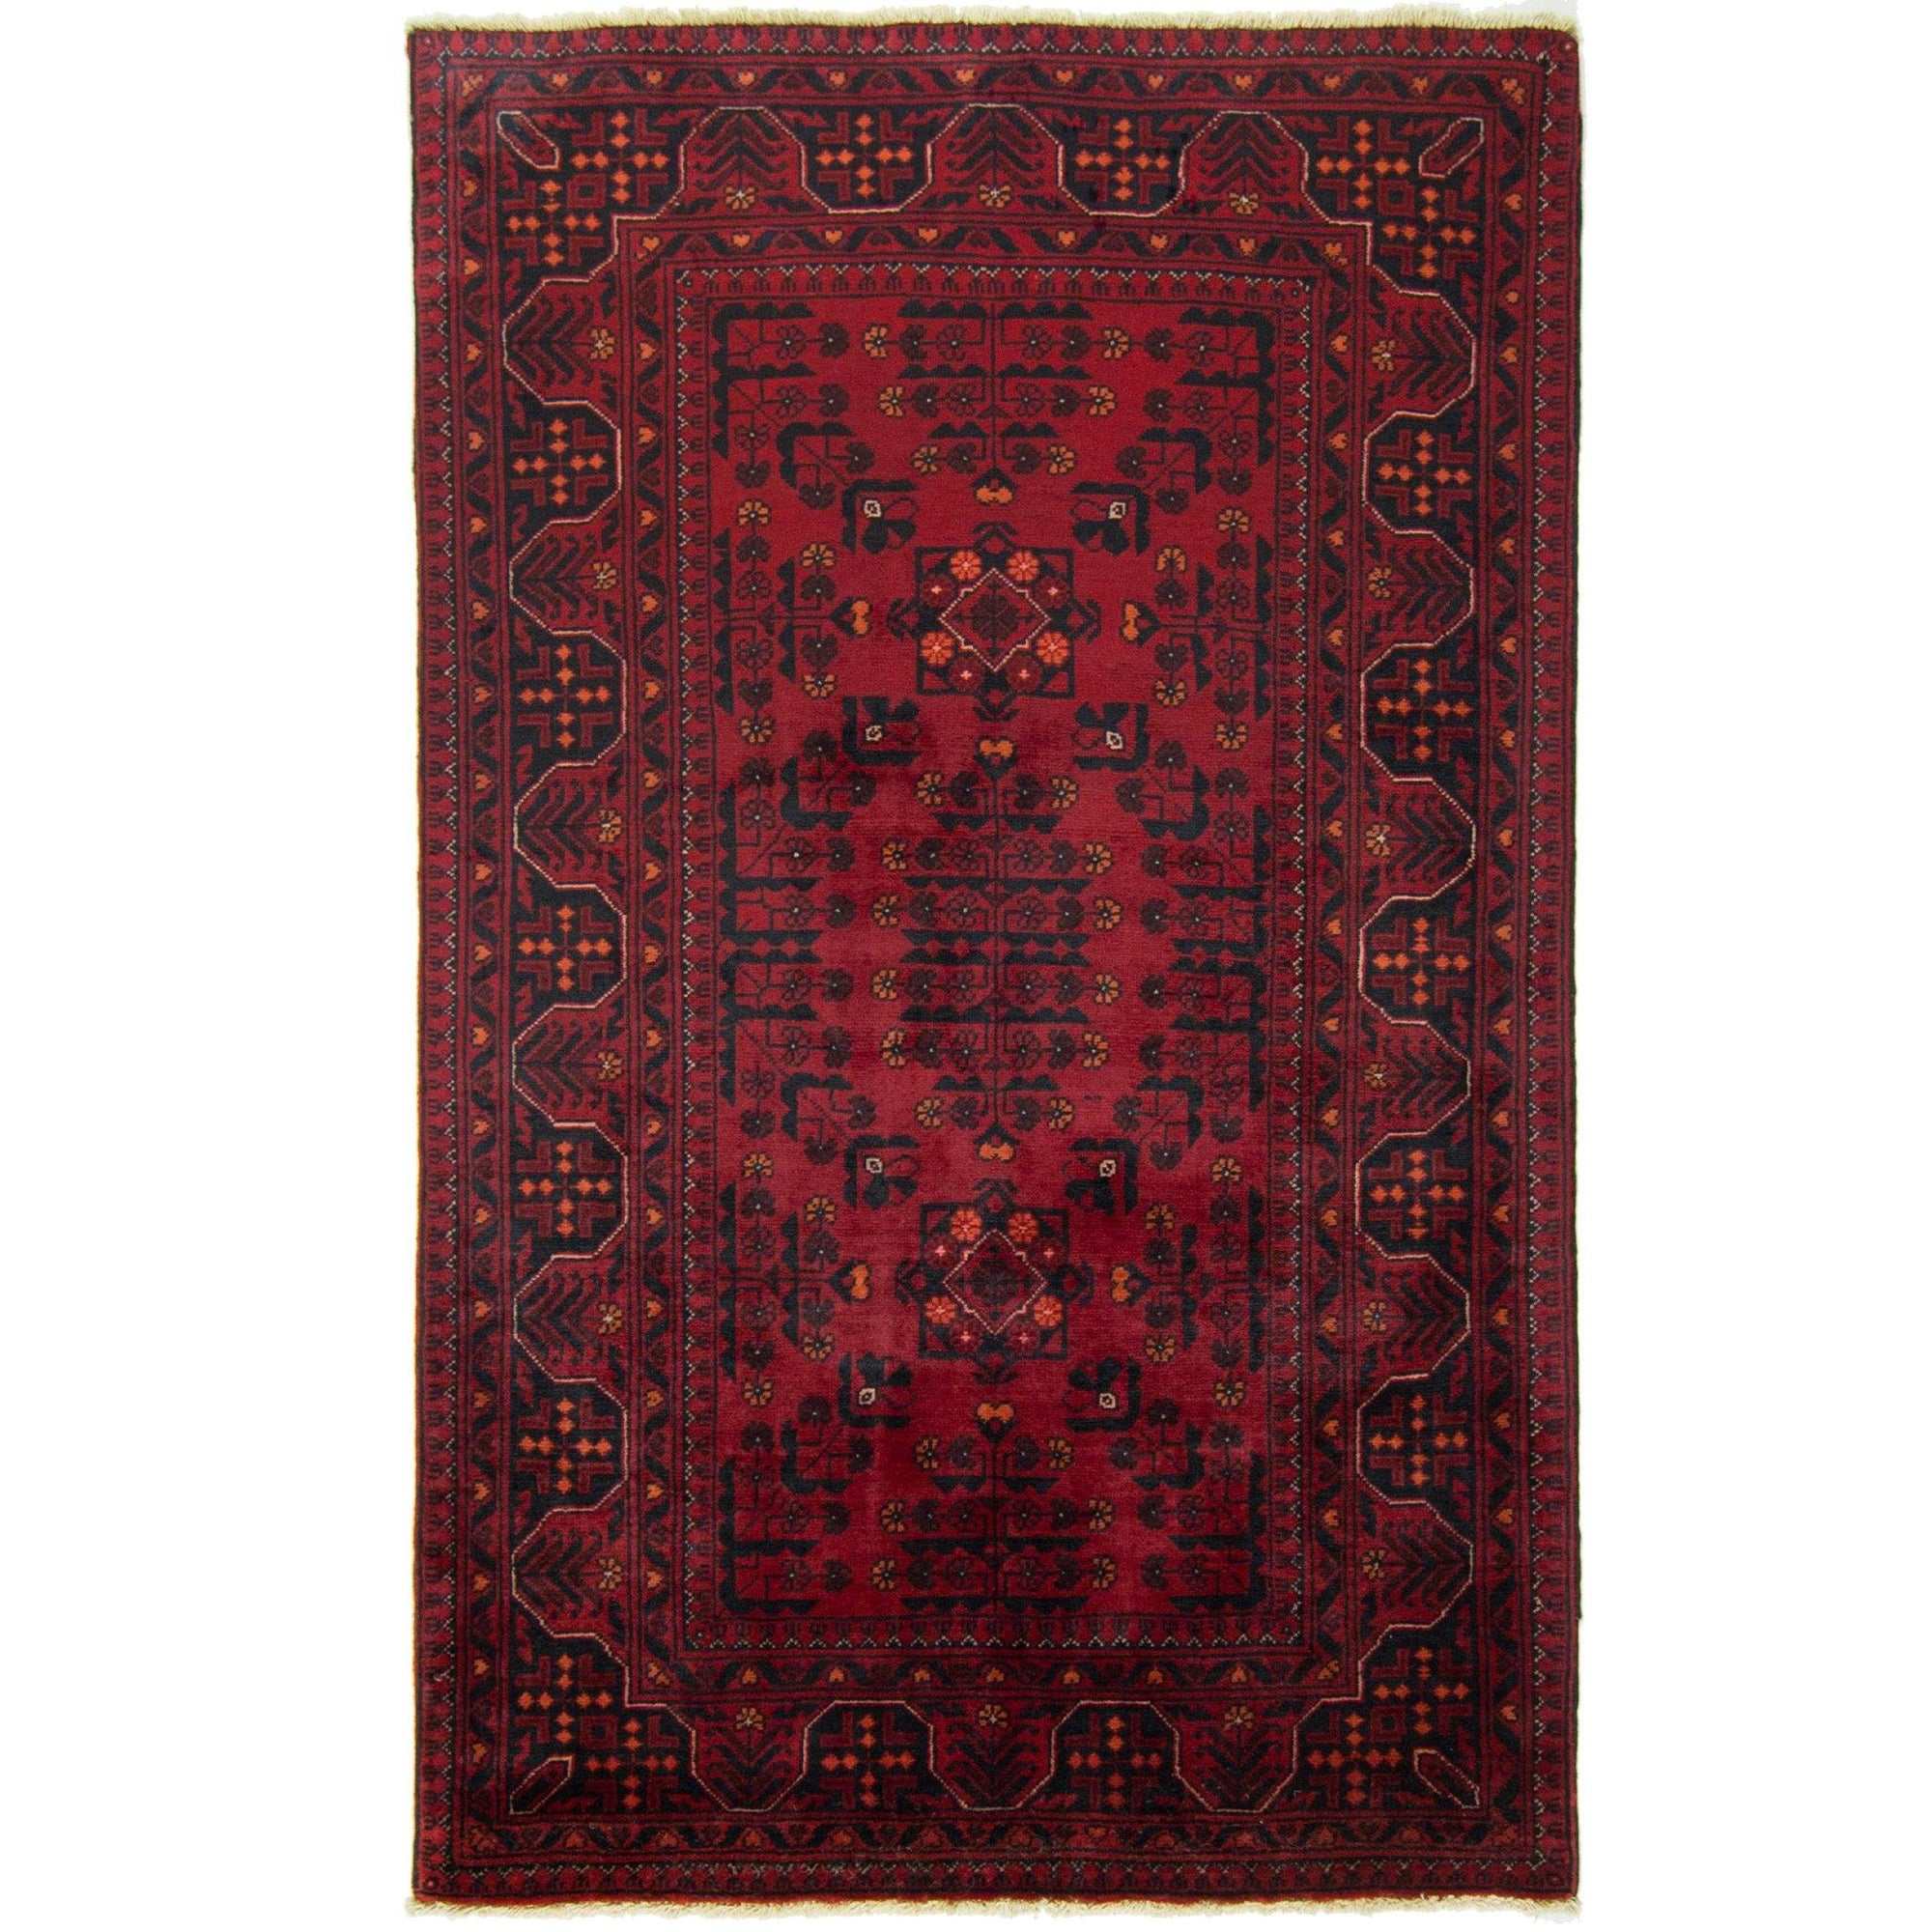 Afghan Tribal Hand-knotted 100% Wool Khal Mohammadi Rug 97cm x 156cm Persian-Rug | House-of-Haghi | NewMarket | Auckland | NZ | Handmade Persian Rugs | Hand Knotted Persian Rugs